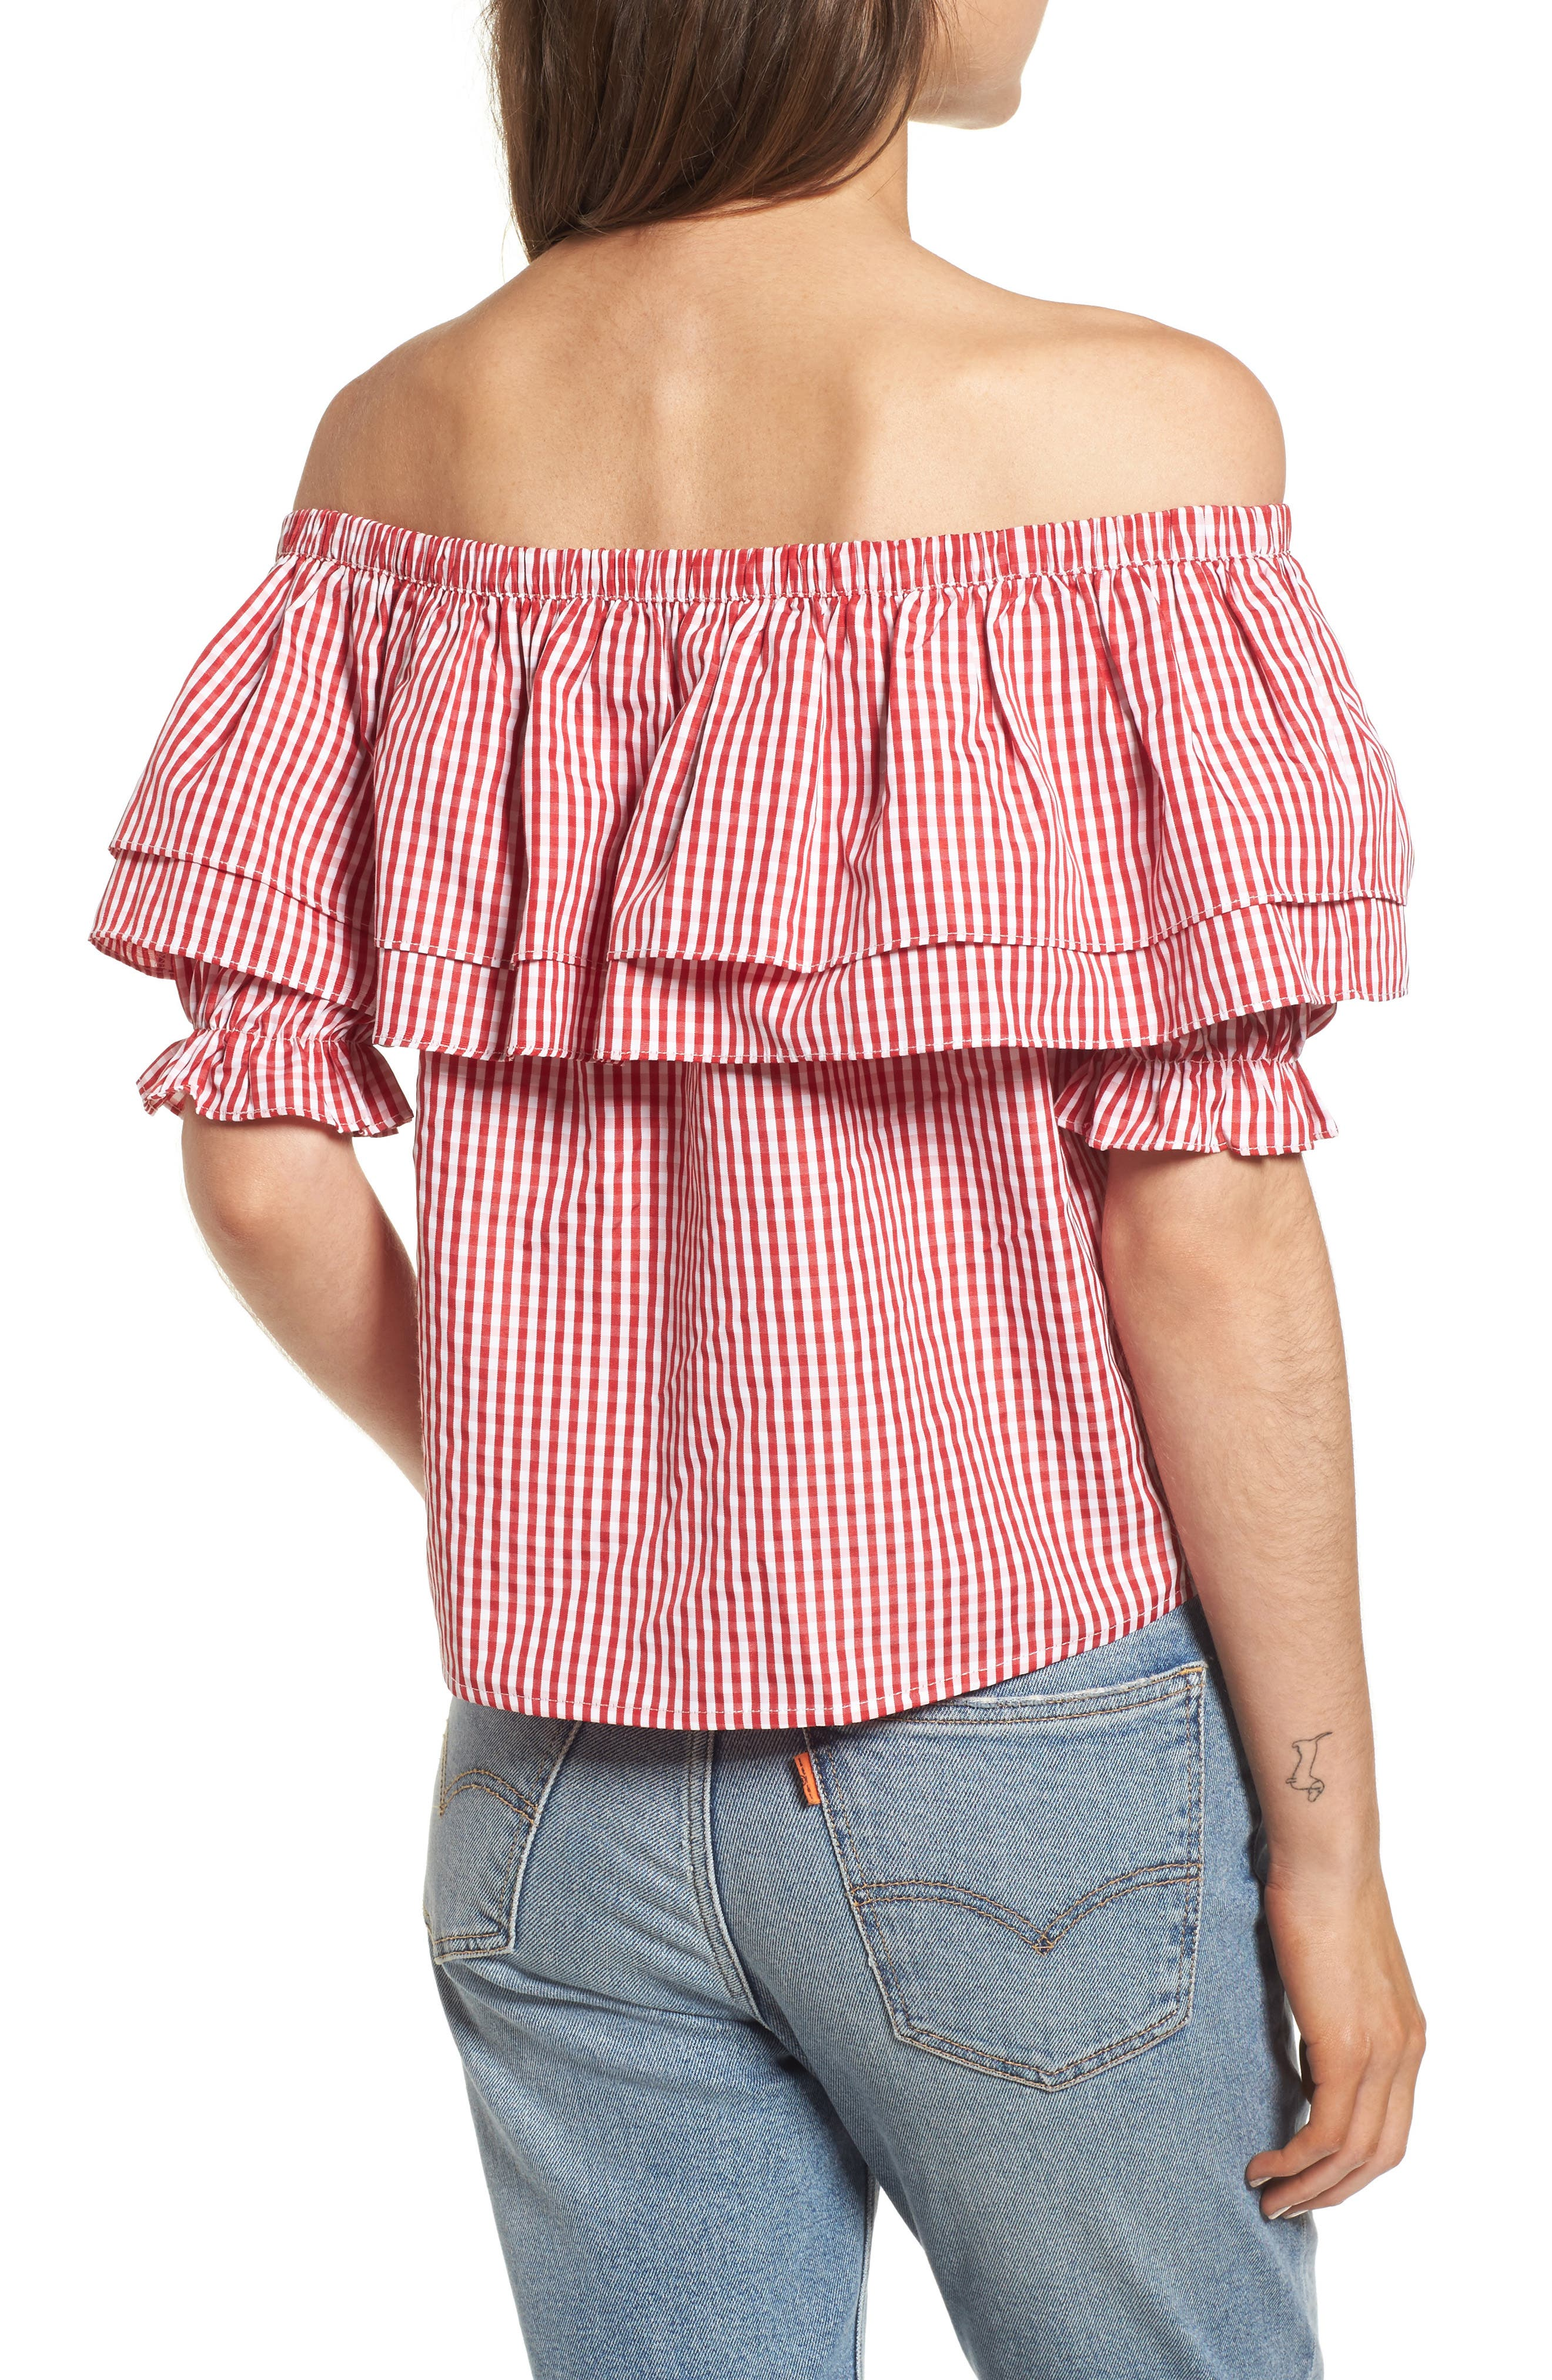 Embroidered Gingham Off the Shoulder Top,                             Alternate thumbnail 2, color,                             Red Gingham